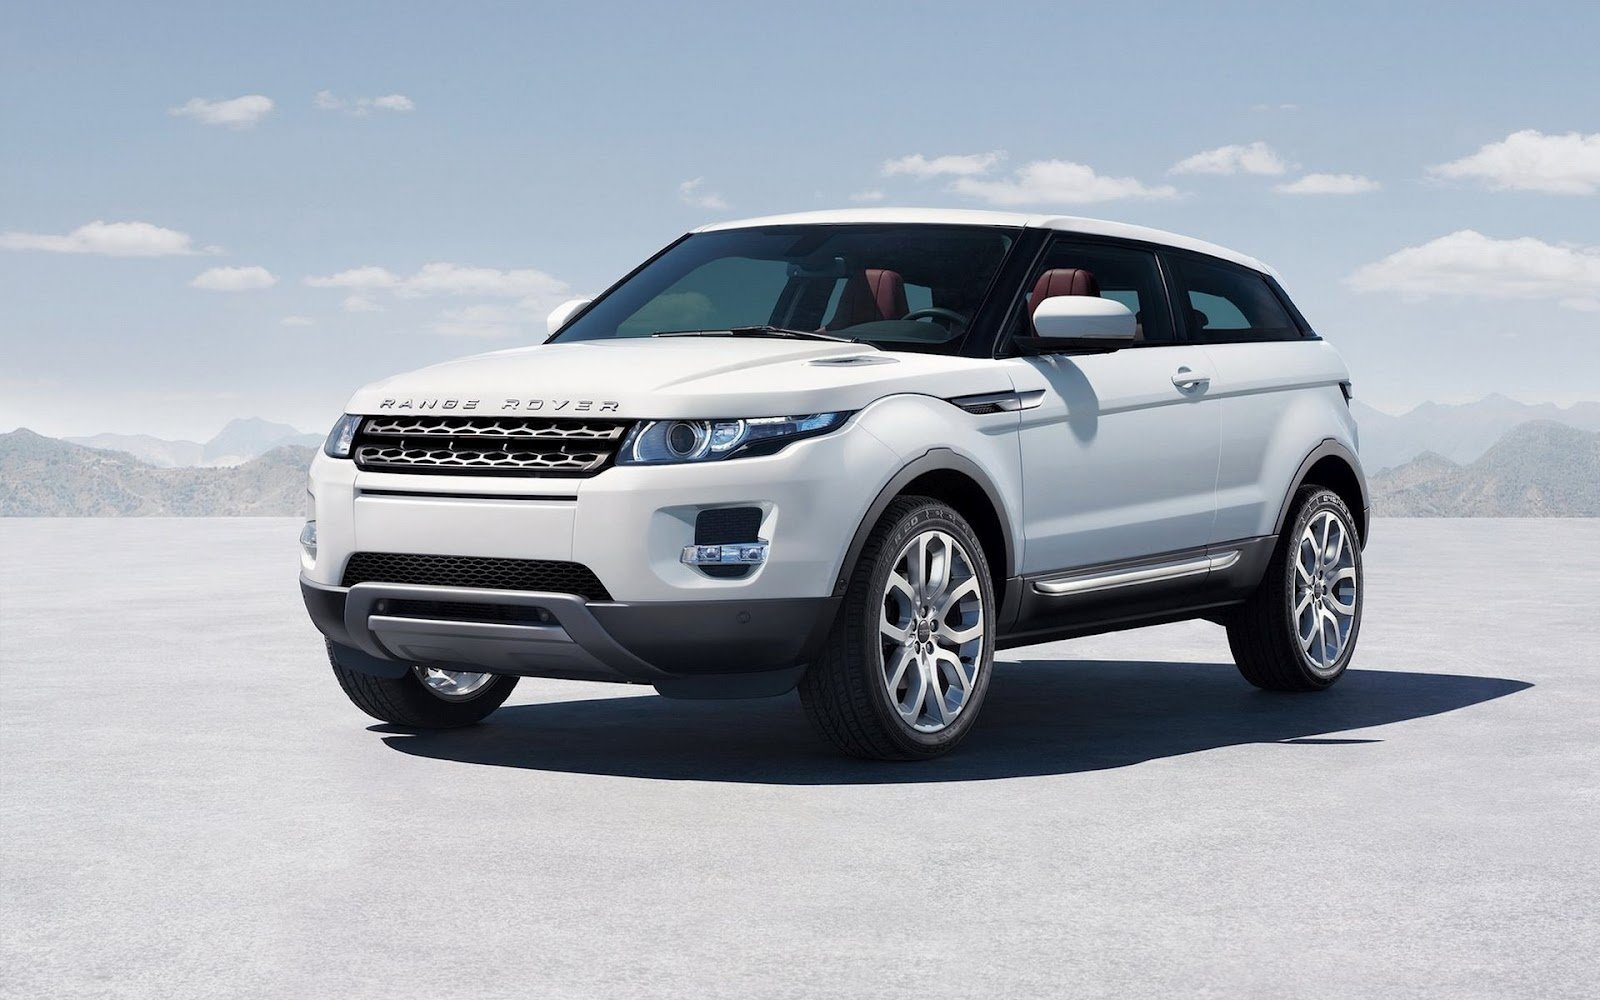 New Wallpapers Of Beautiful Cars Land Rover Range Rover Evoque On This Month